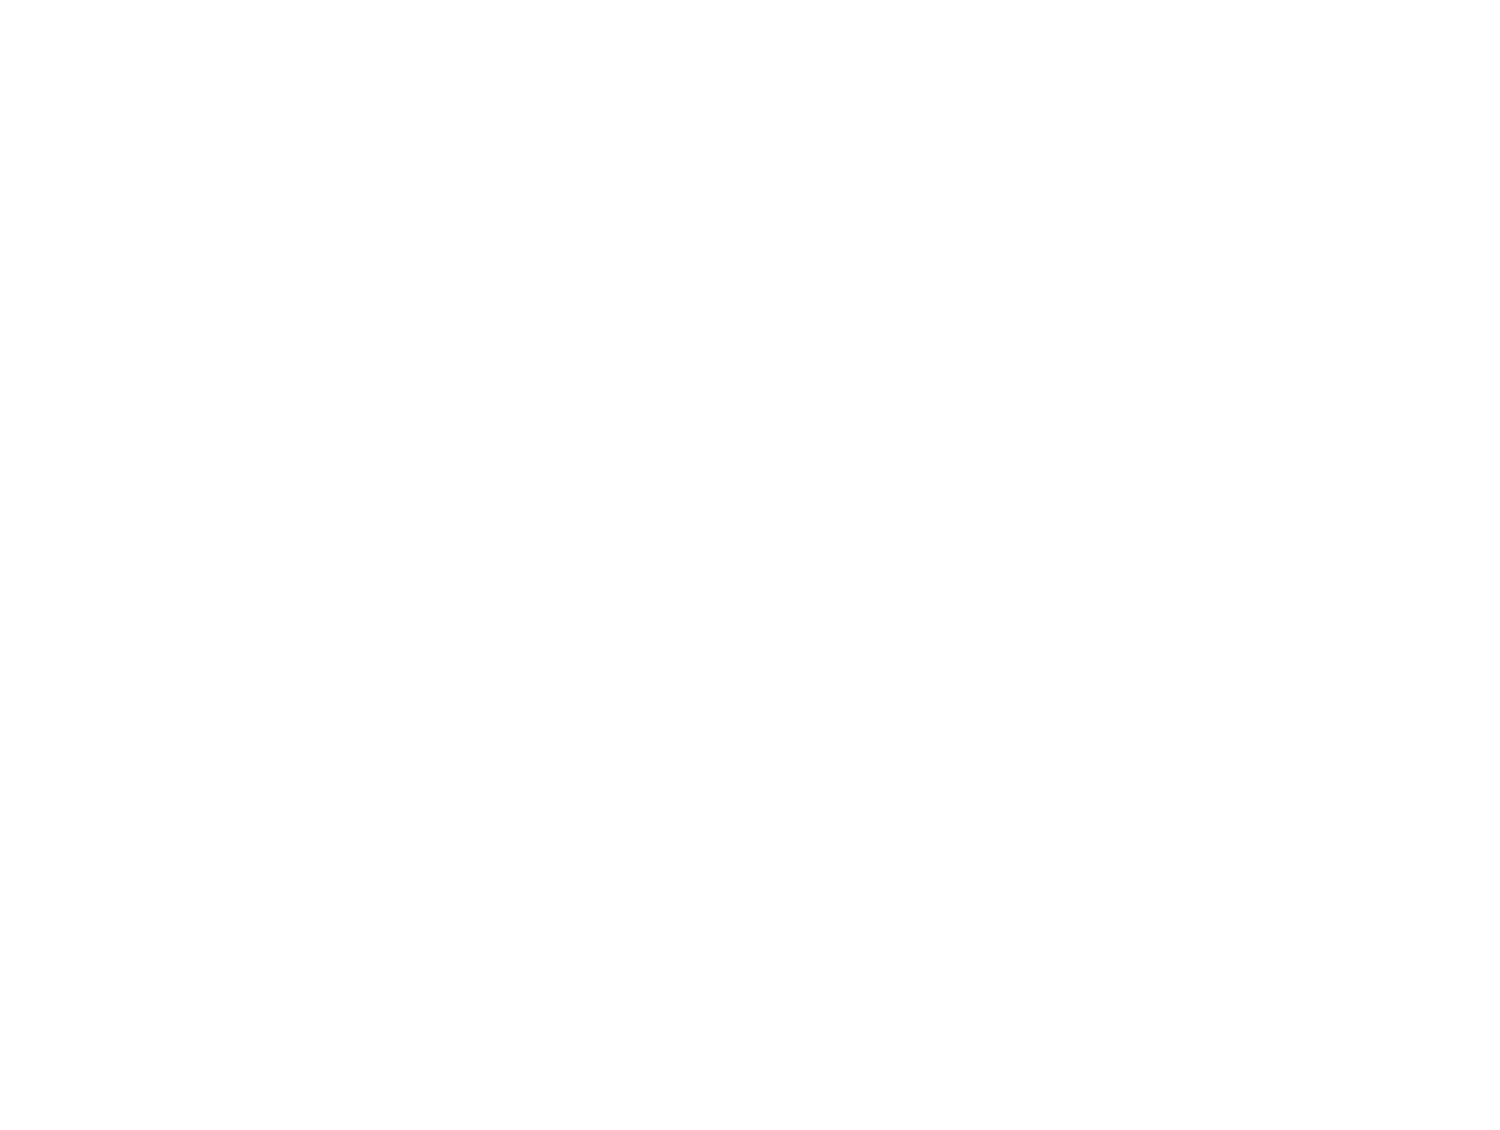 Proximus Group